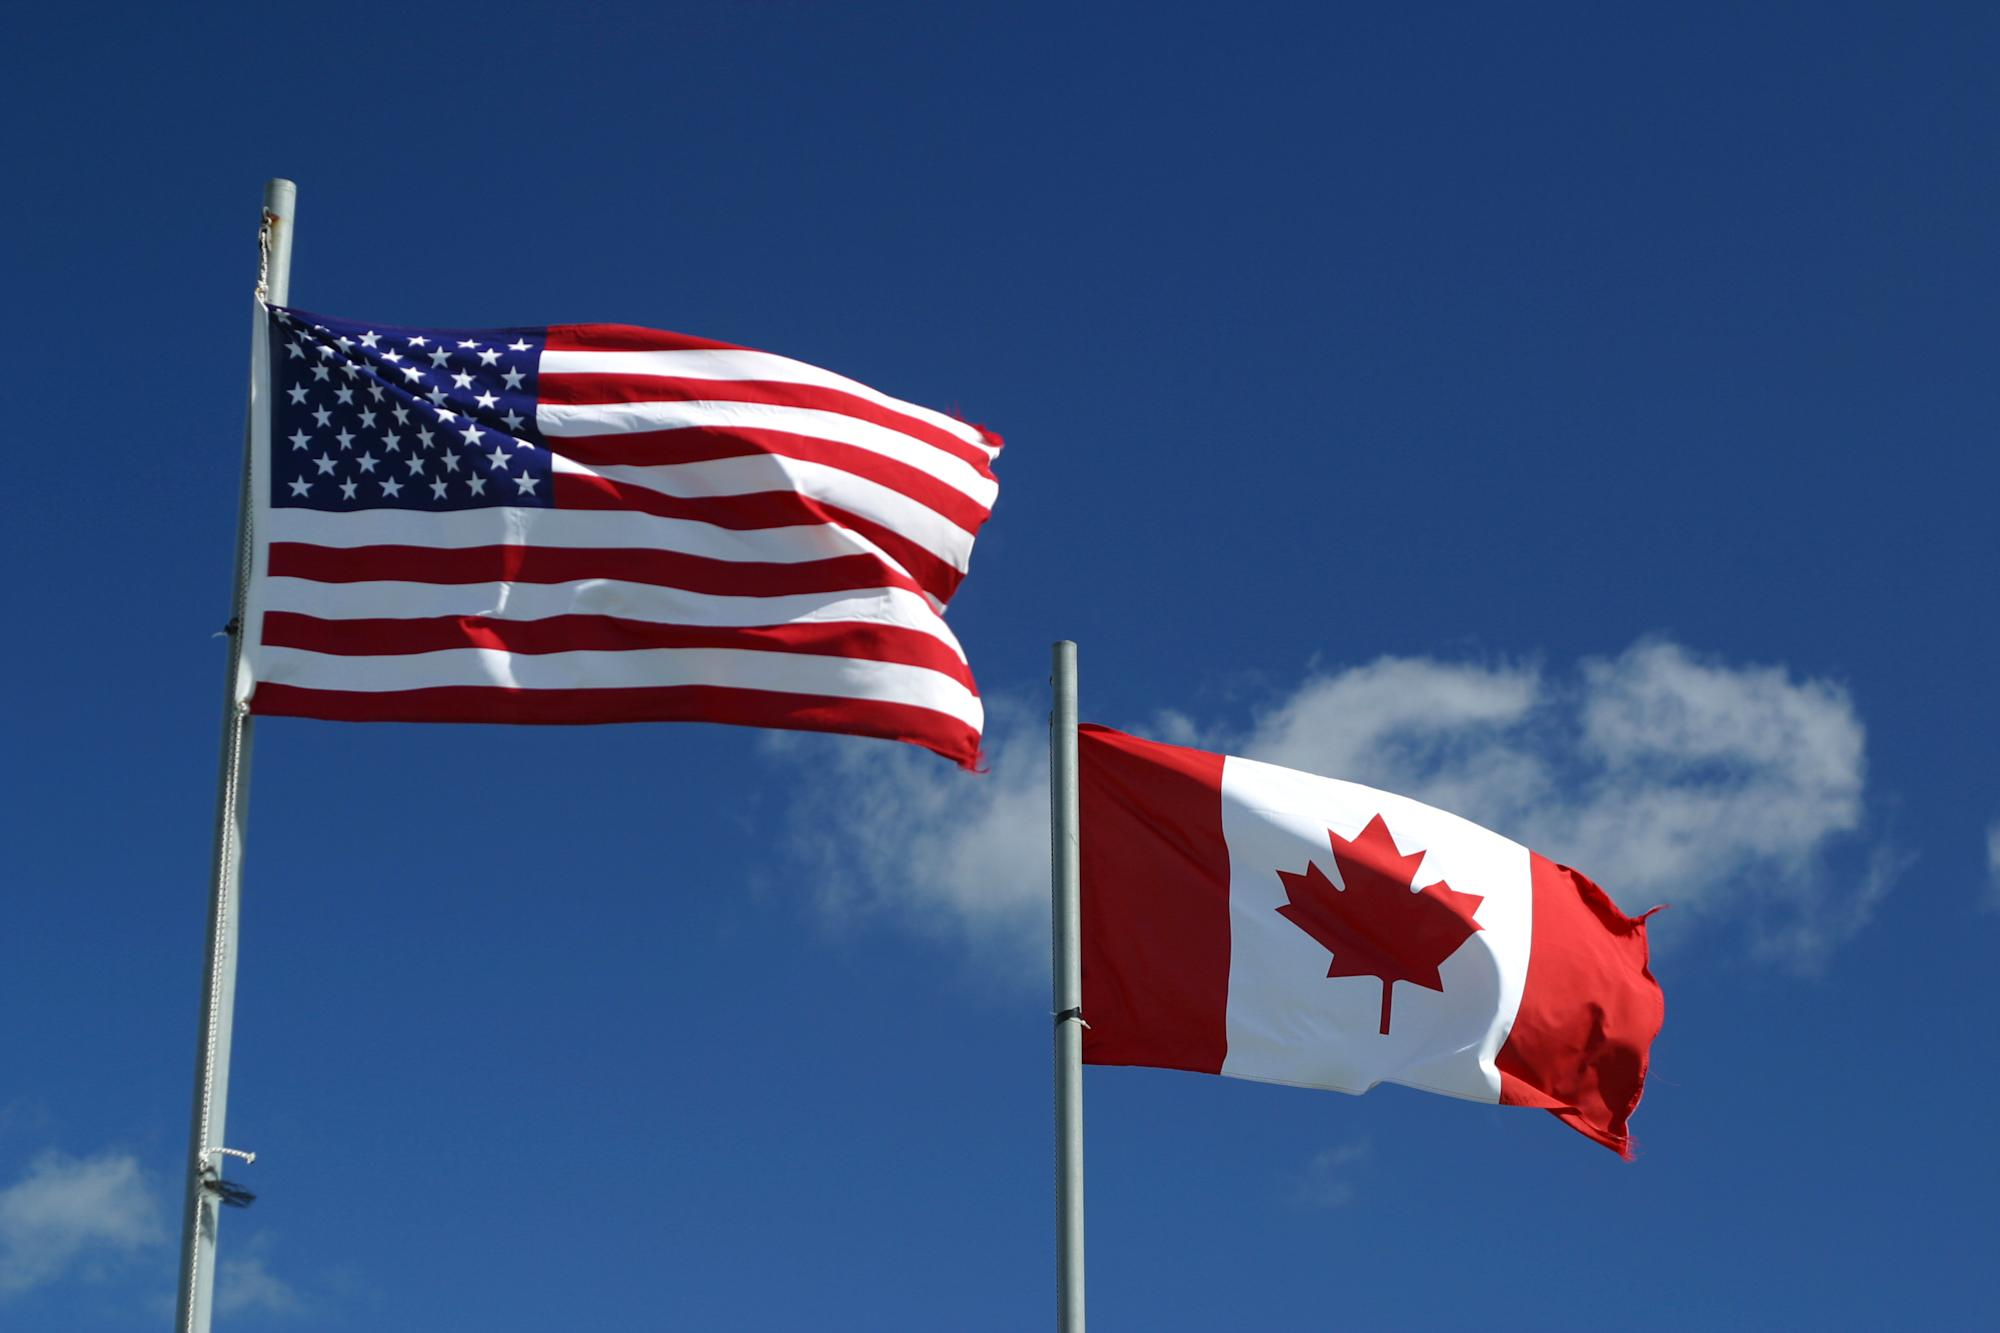 73% of Canadians say the U.S. is not safe due to COVID-19: Yahoo/Maru poll